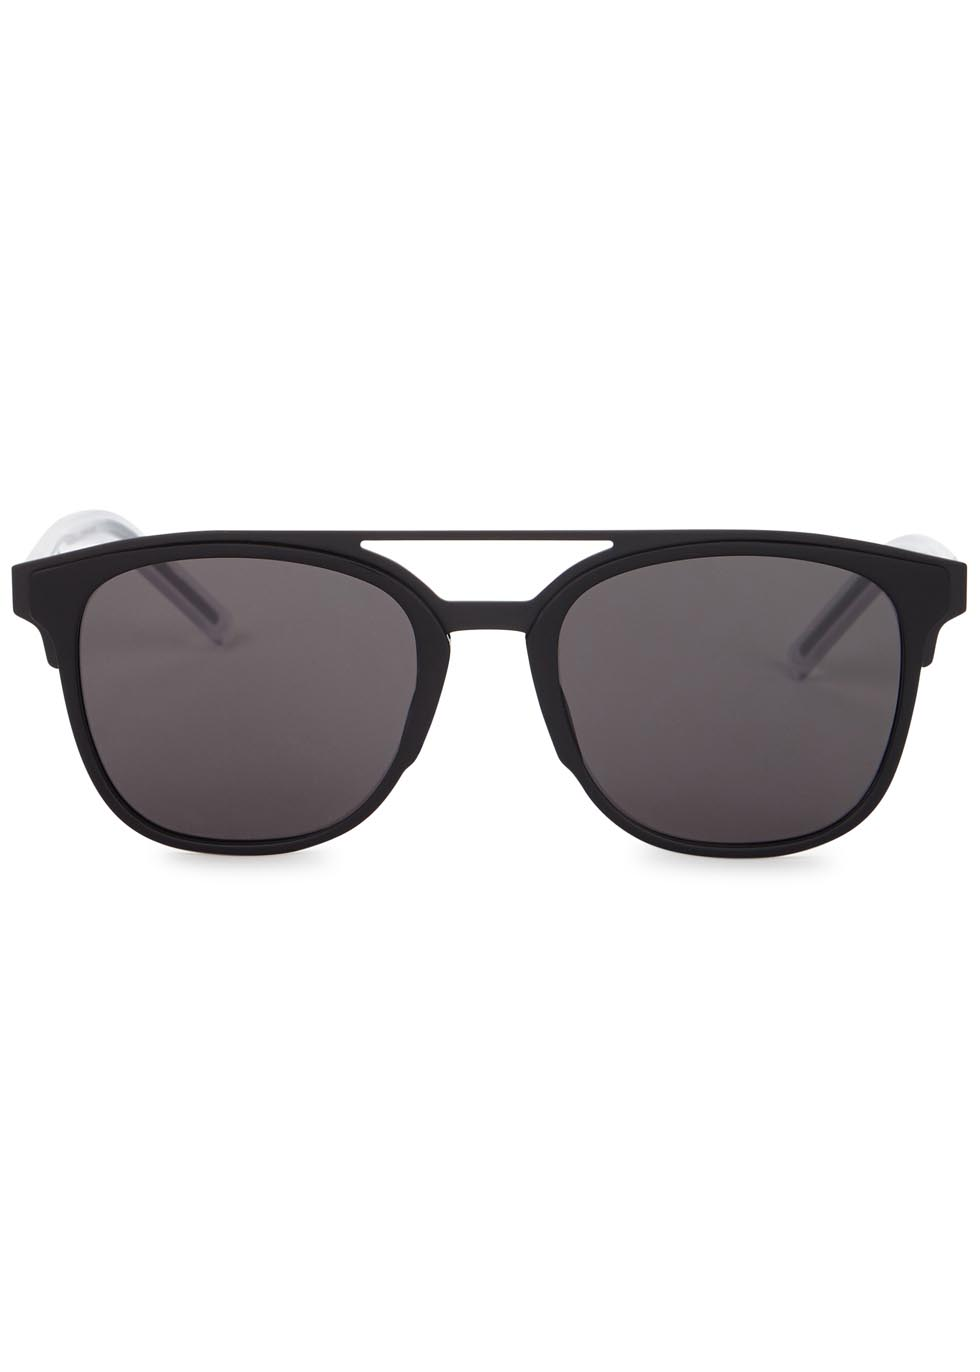 Black Tie 211s square-frame sunglasses - Dior Homme